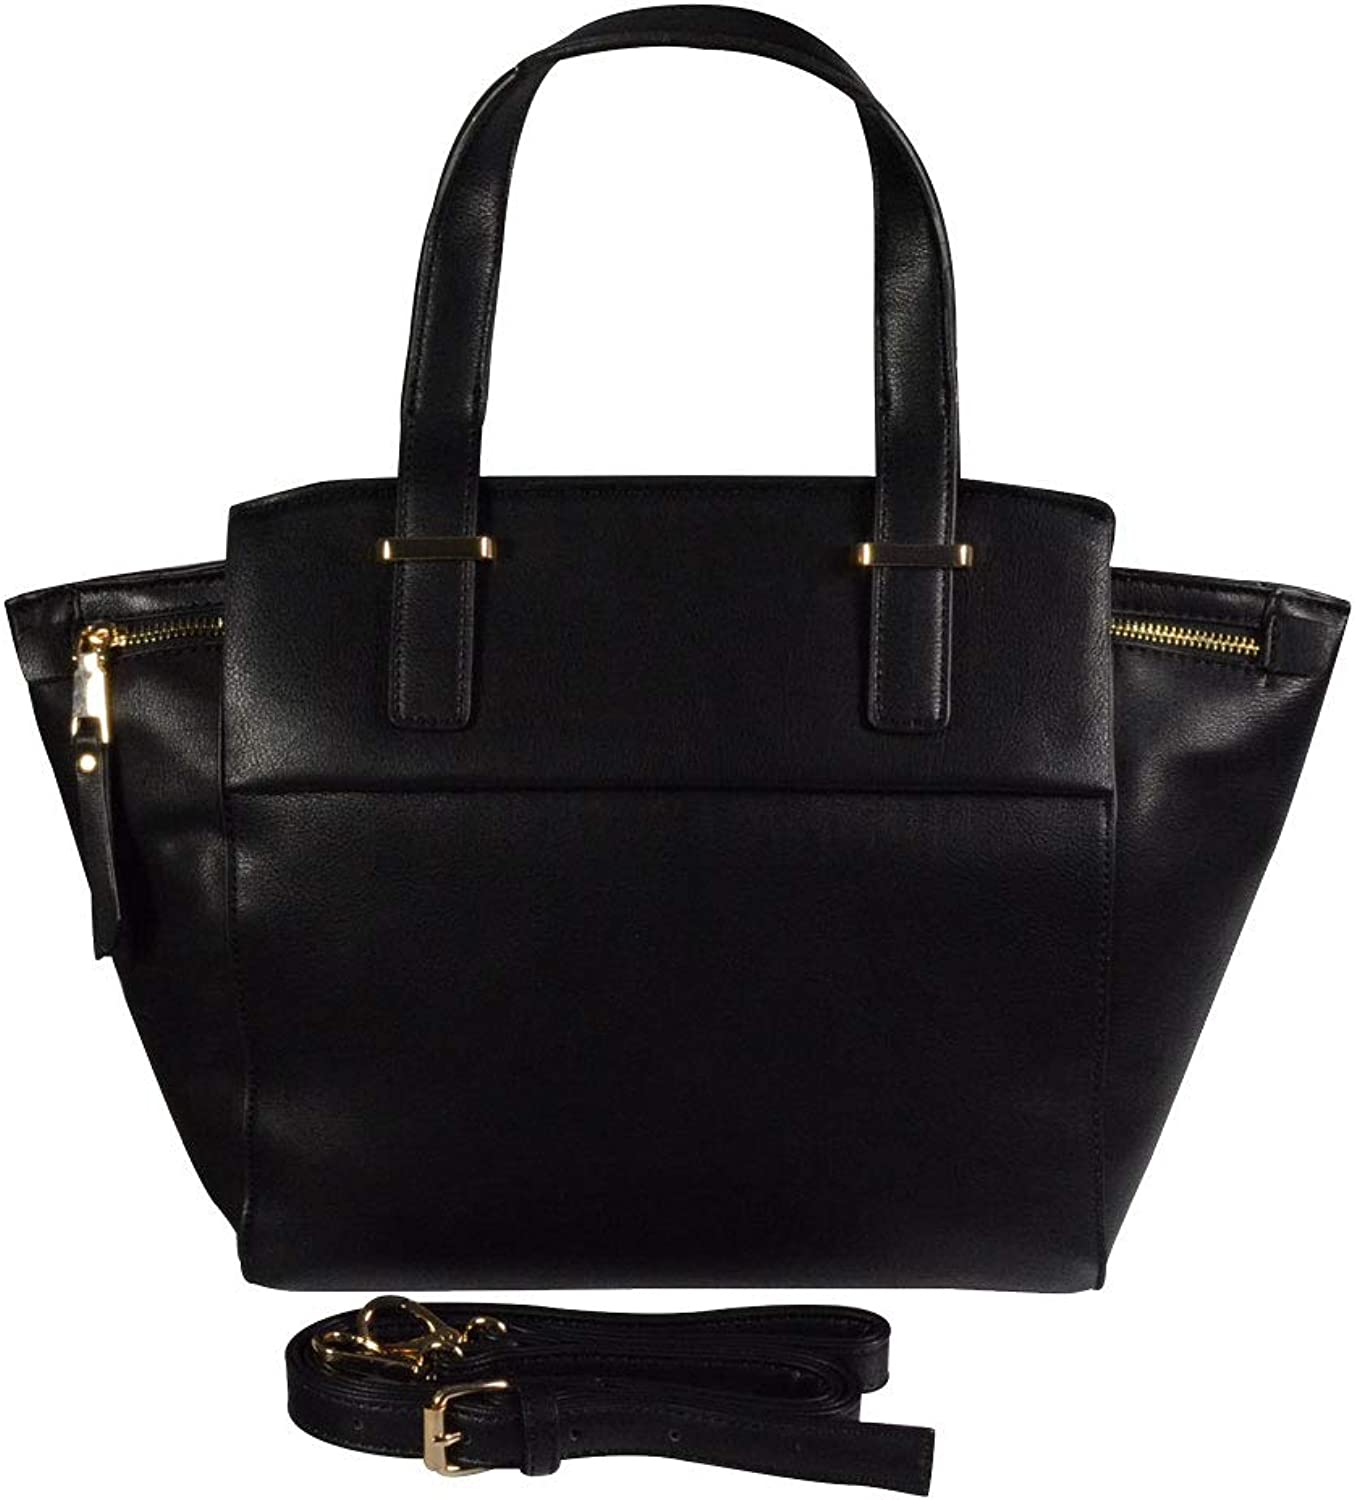 Katie Q New York Vegan Leather Structured Satchel